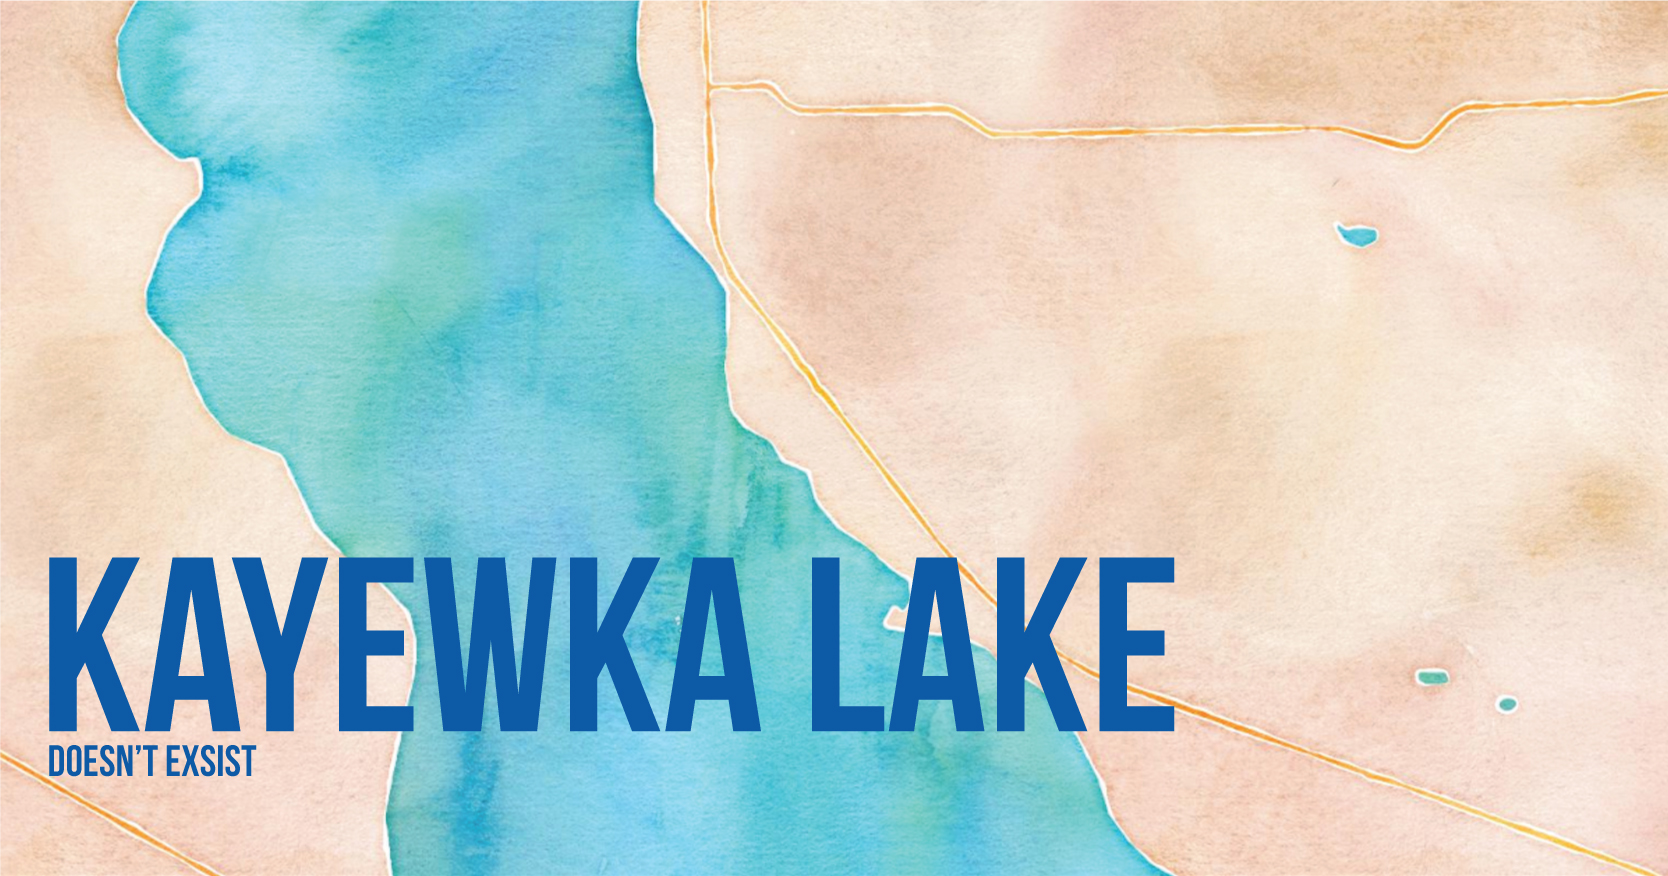 12th Finger Lake Found: Kayewka; Plus A Handy Guide on How to Correctly Pronounce the Finger Lakes